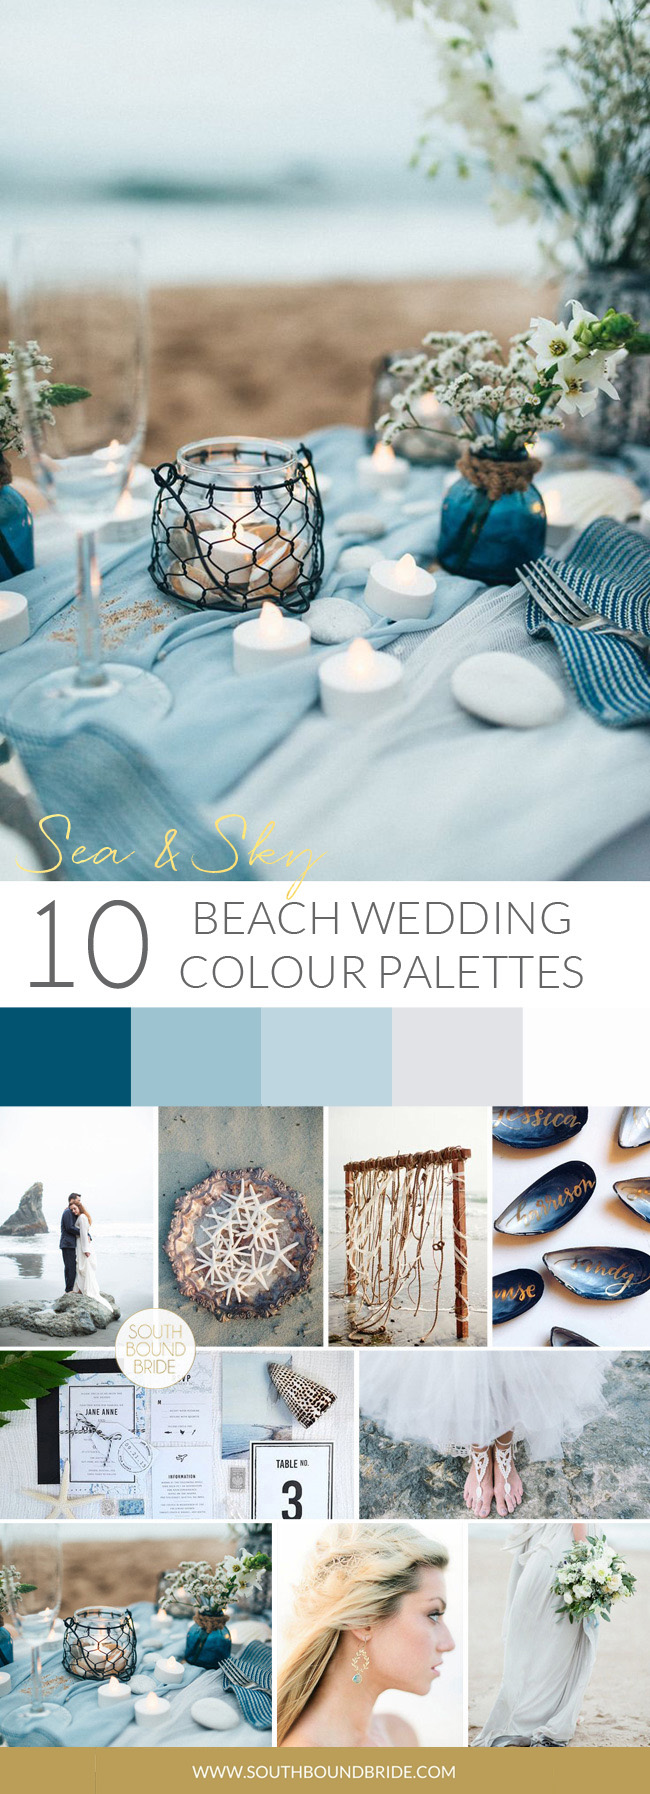 Sea & Sky Beach Wedding Palette | SouthBound Bride